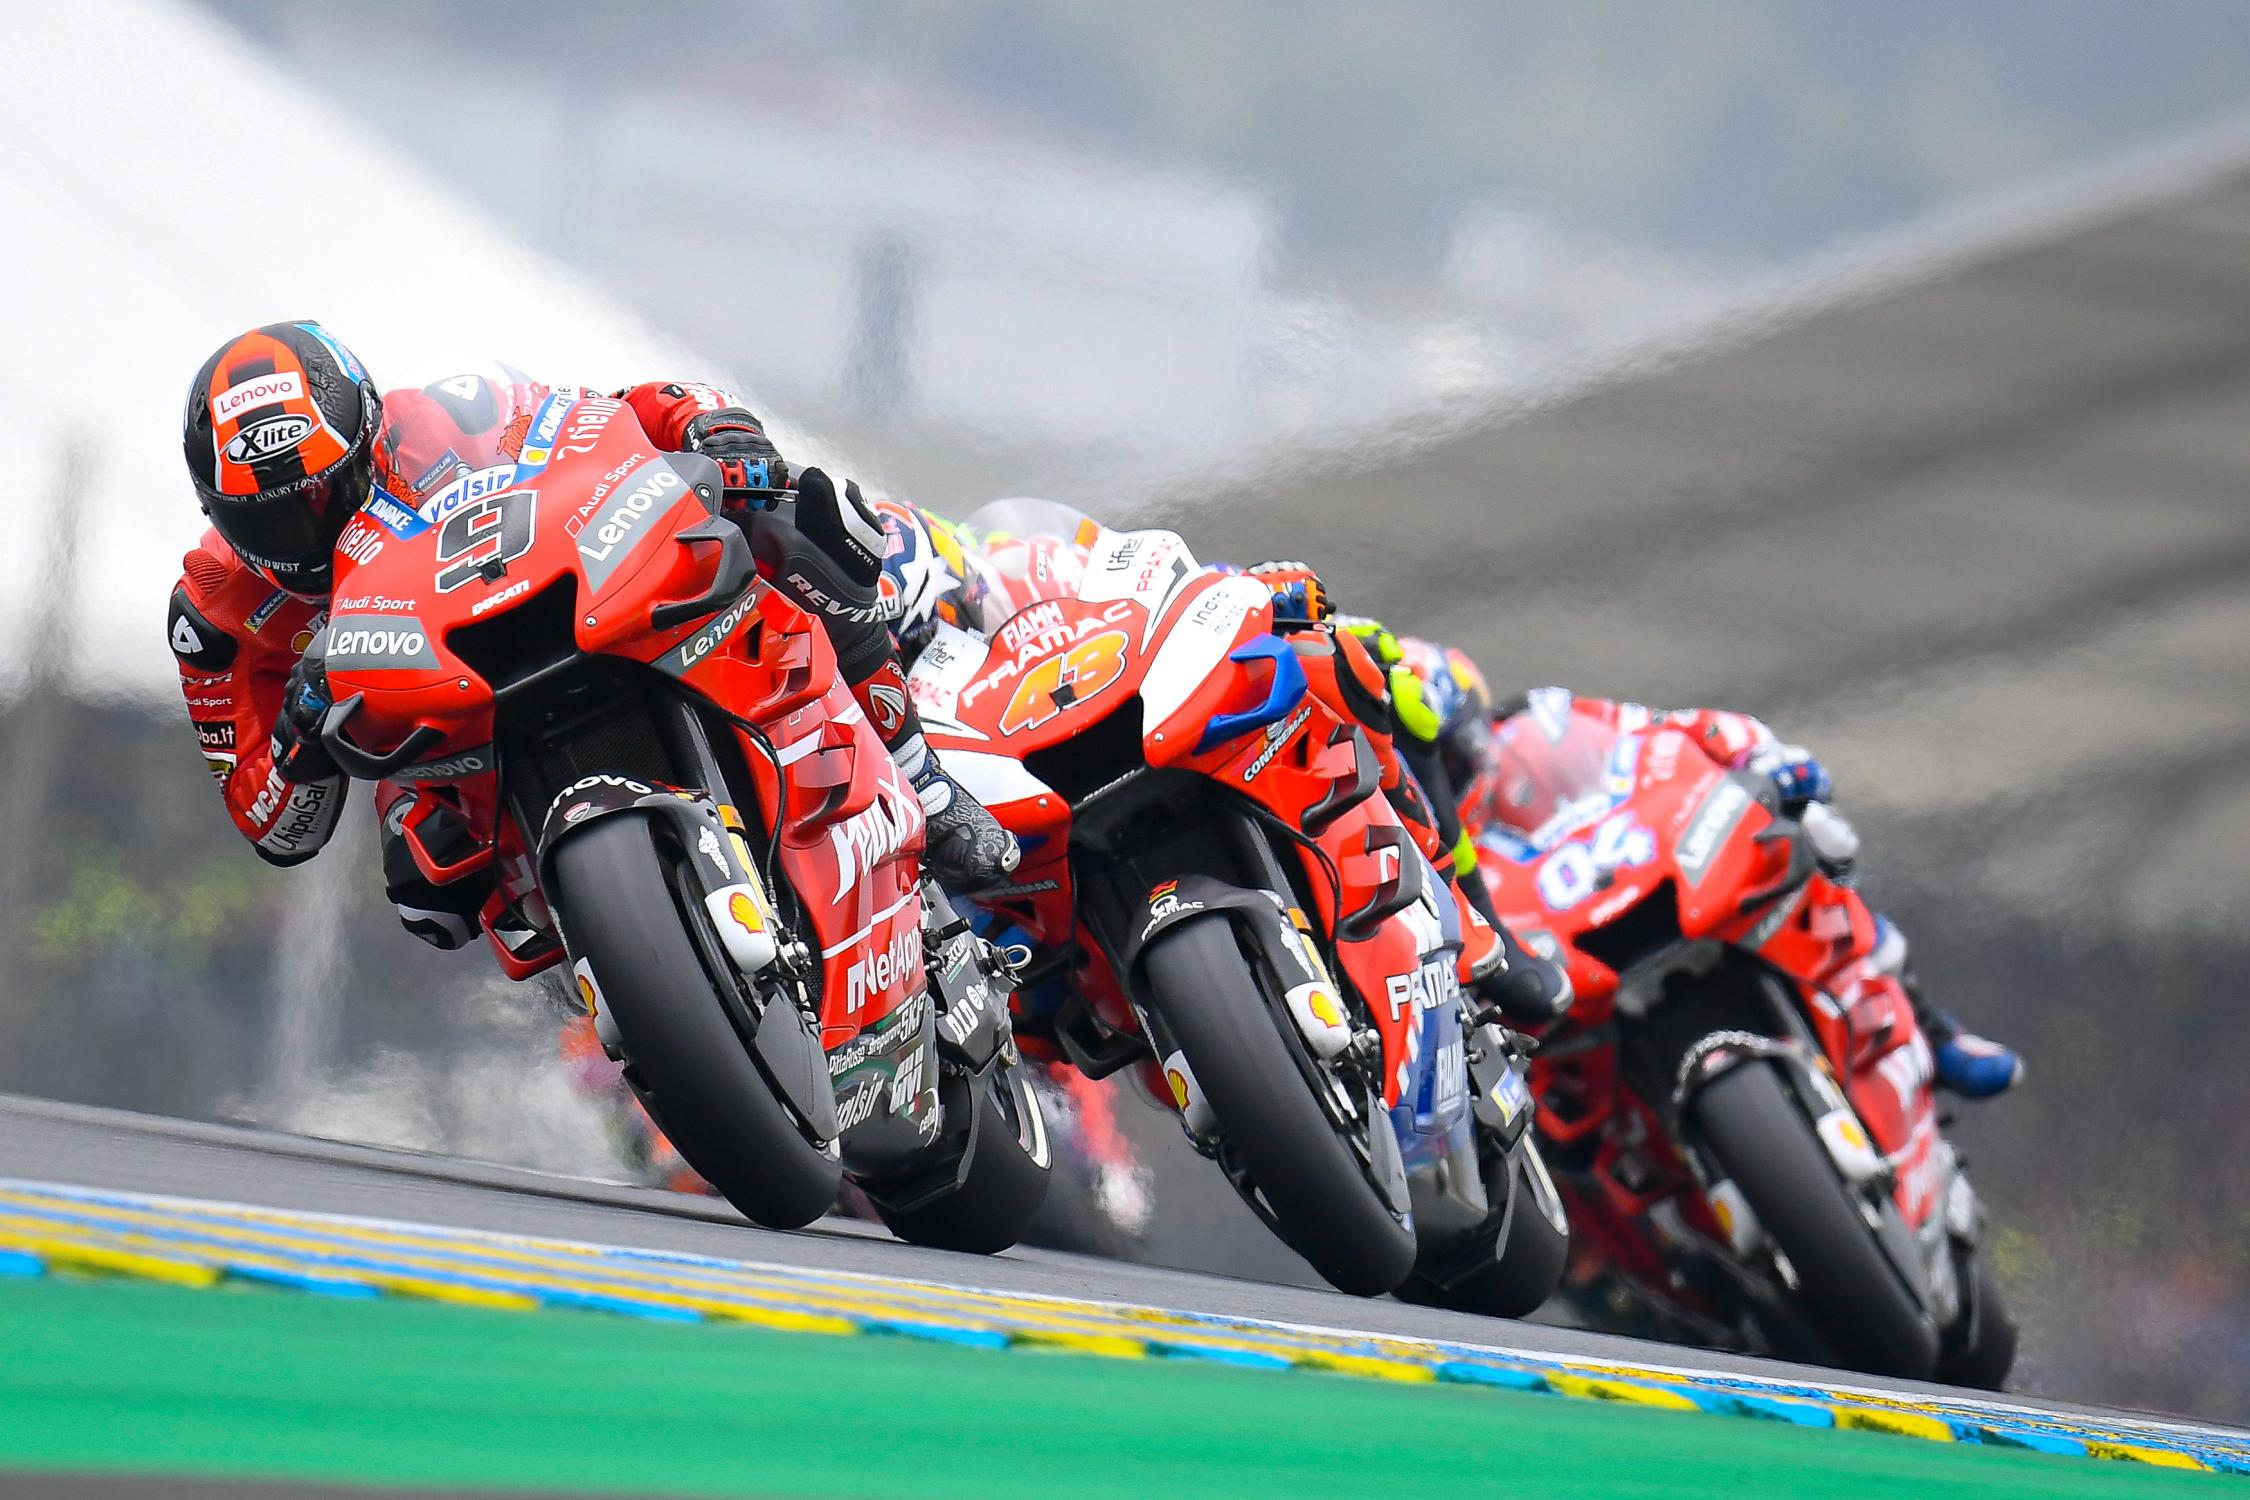 Danilo Petrucci vs Jack Miller MotoGP World Superbike Donovan Fourie The Bike Show trio